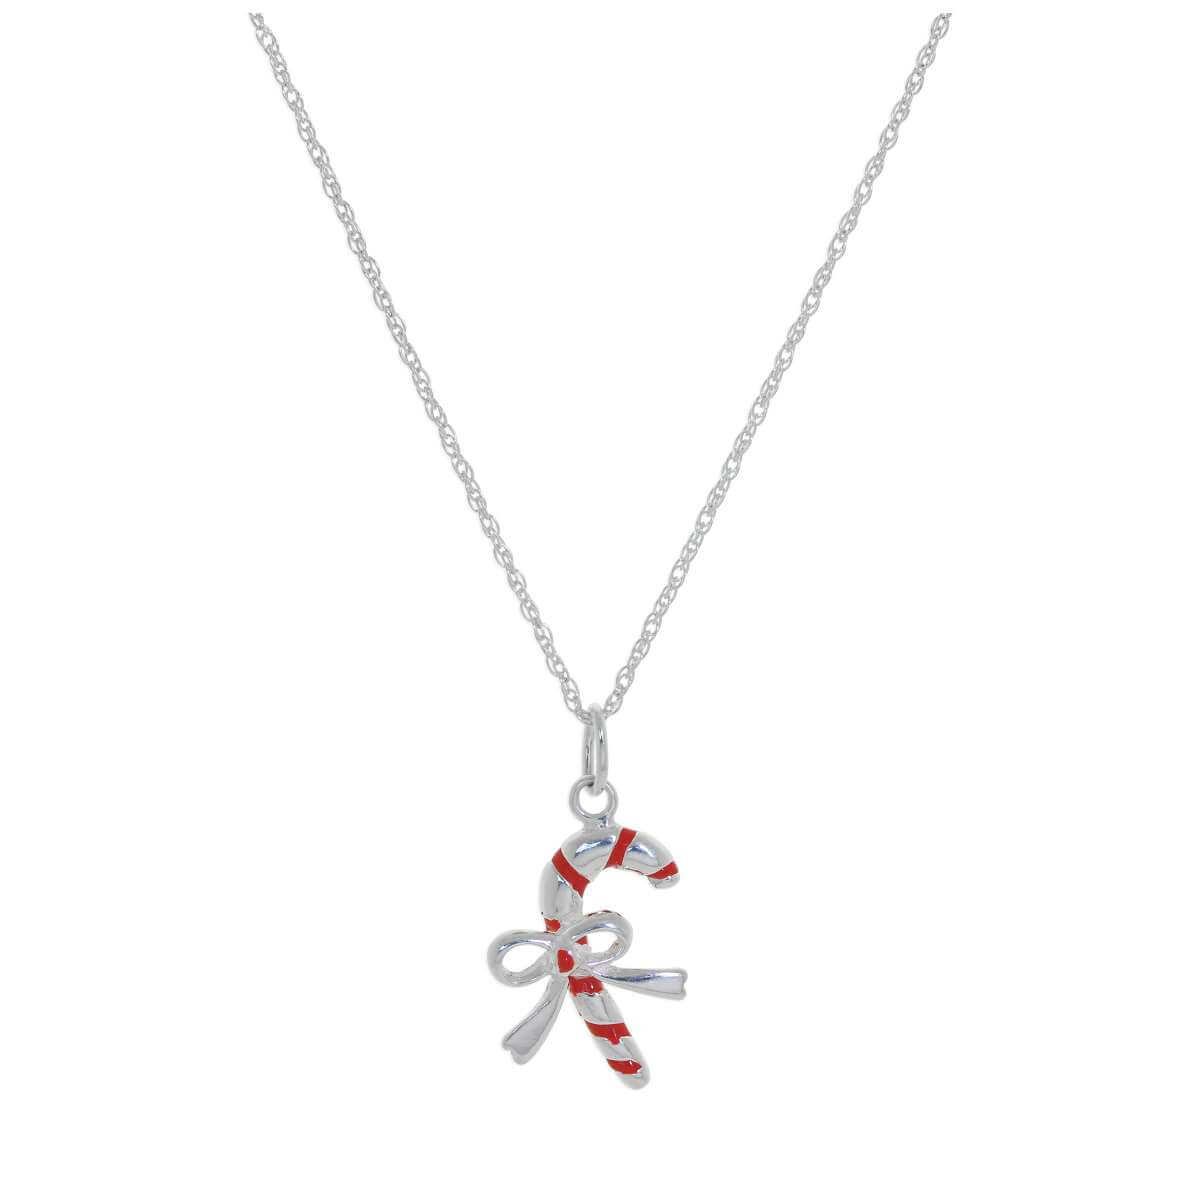 Sterling Silver Candy Cane Bow Red Enamel Necklace - 14 - 24 Inches